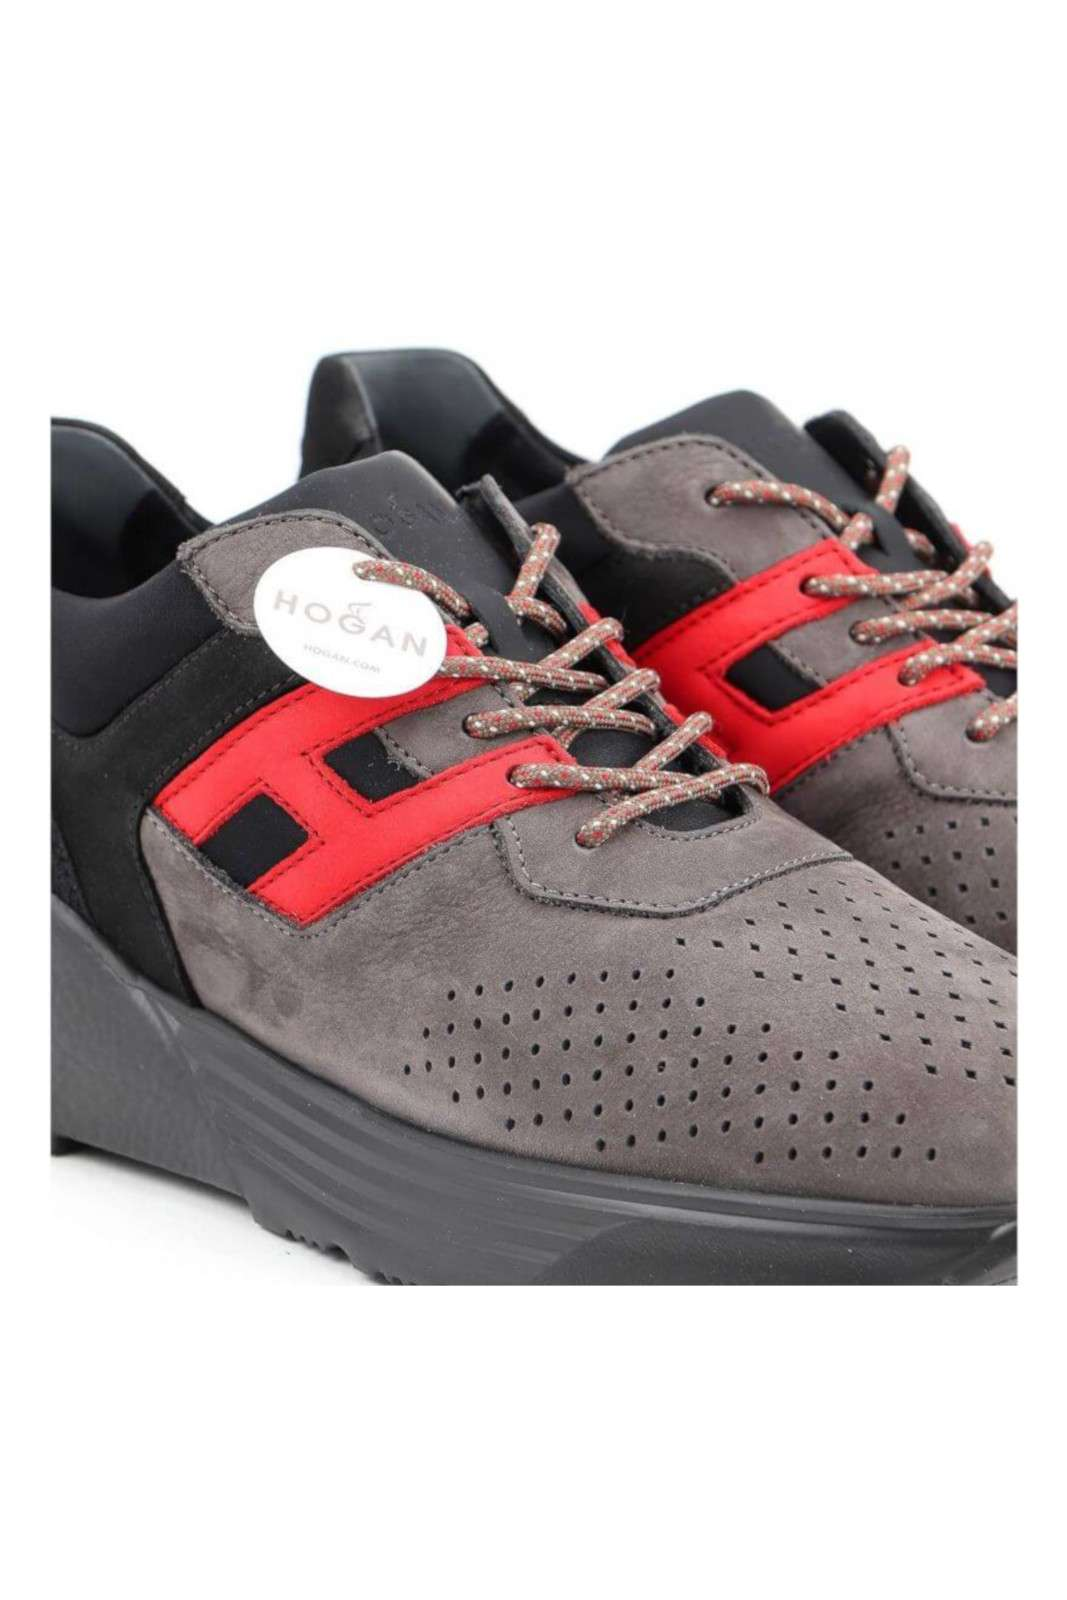 Hogan sneakers uomo ACTIVE ONE in pelle a nabuk